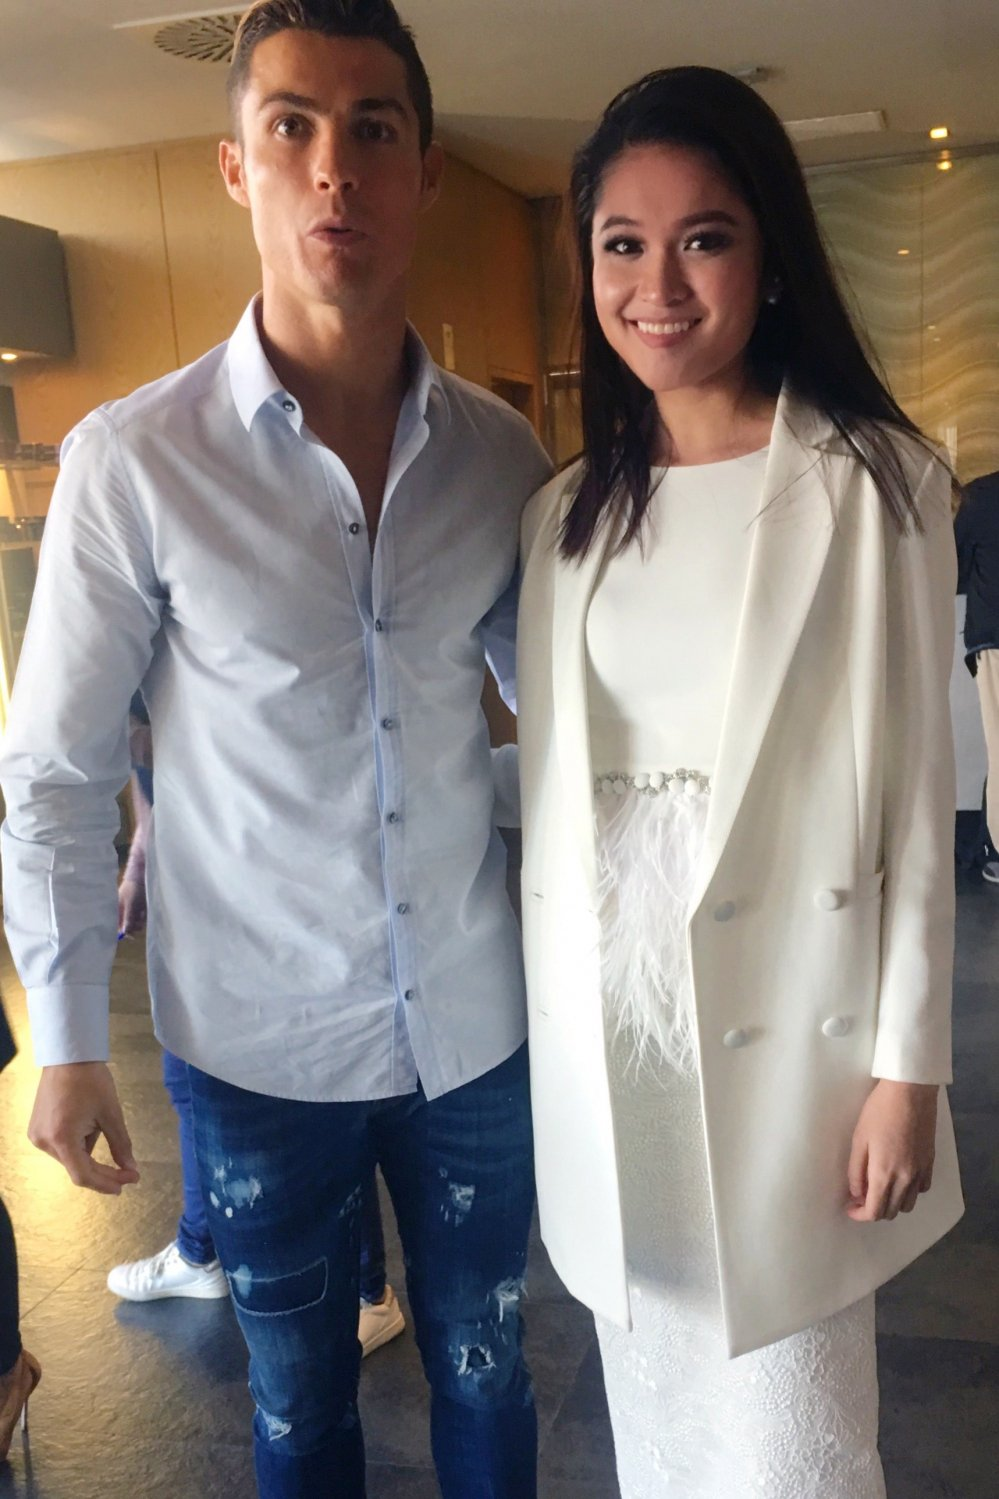 Cristiano Ronaldo om eo chup anh cung A hau Thuy Dung hinh anh 4